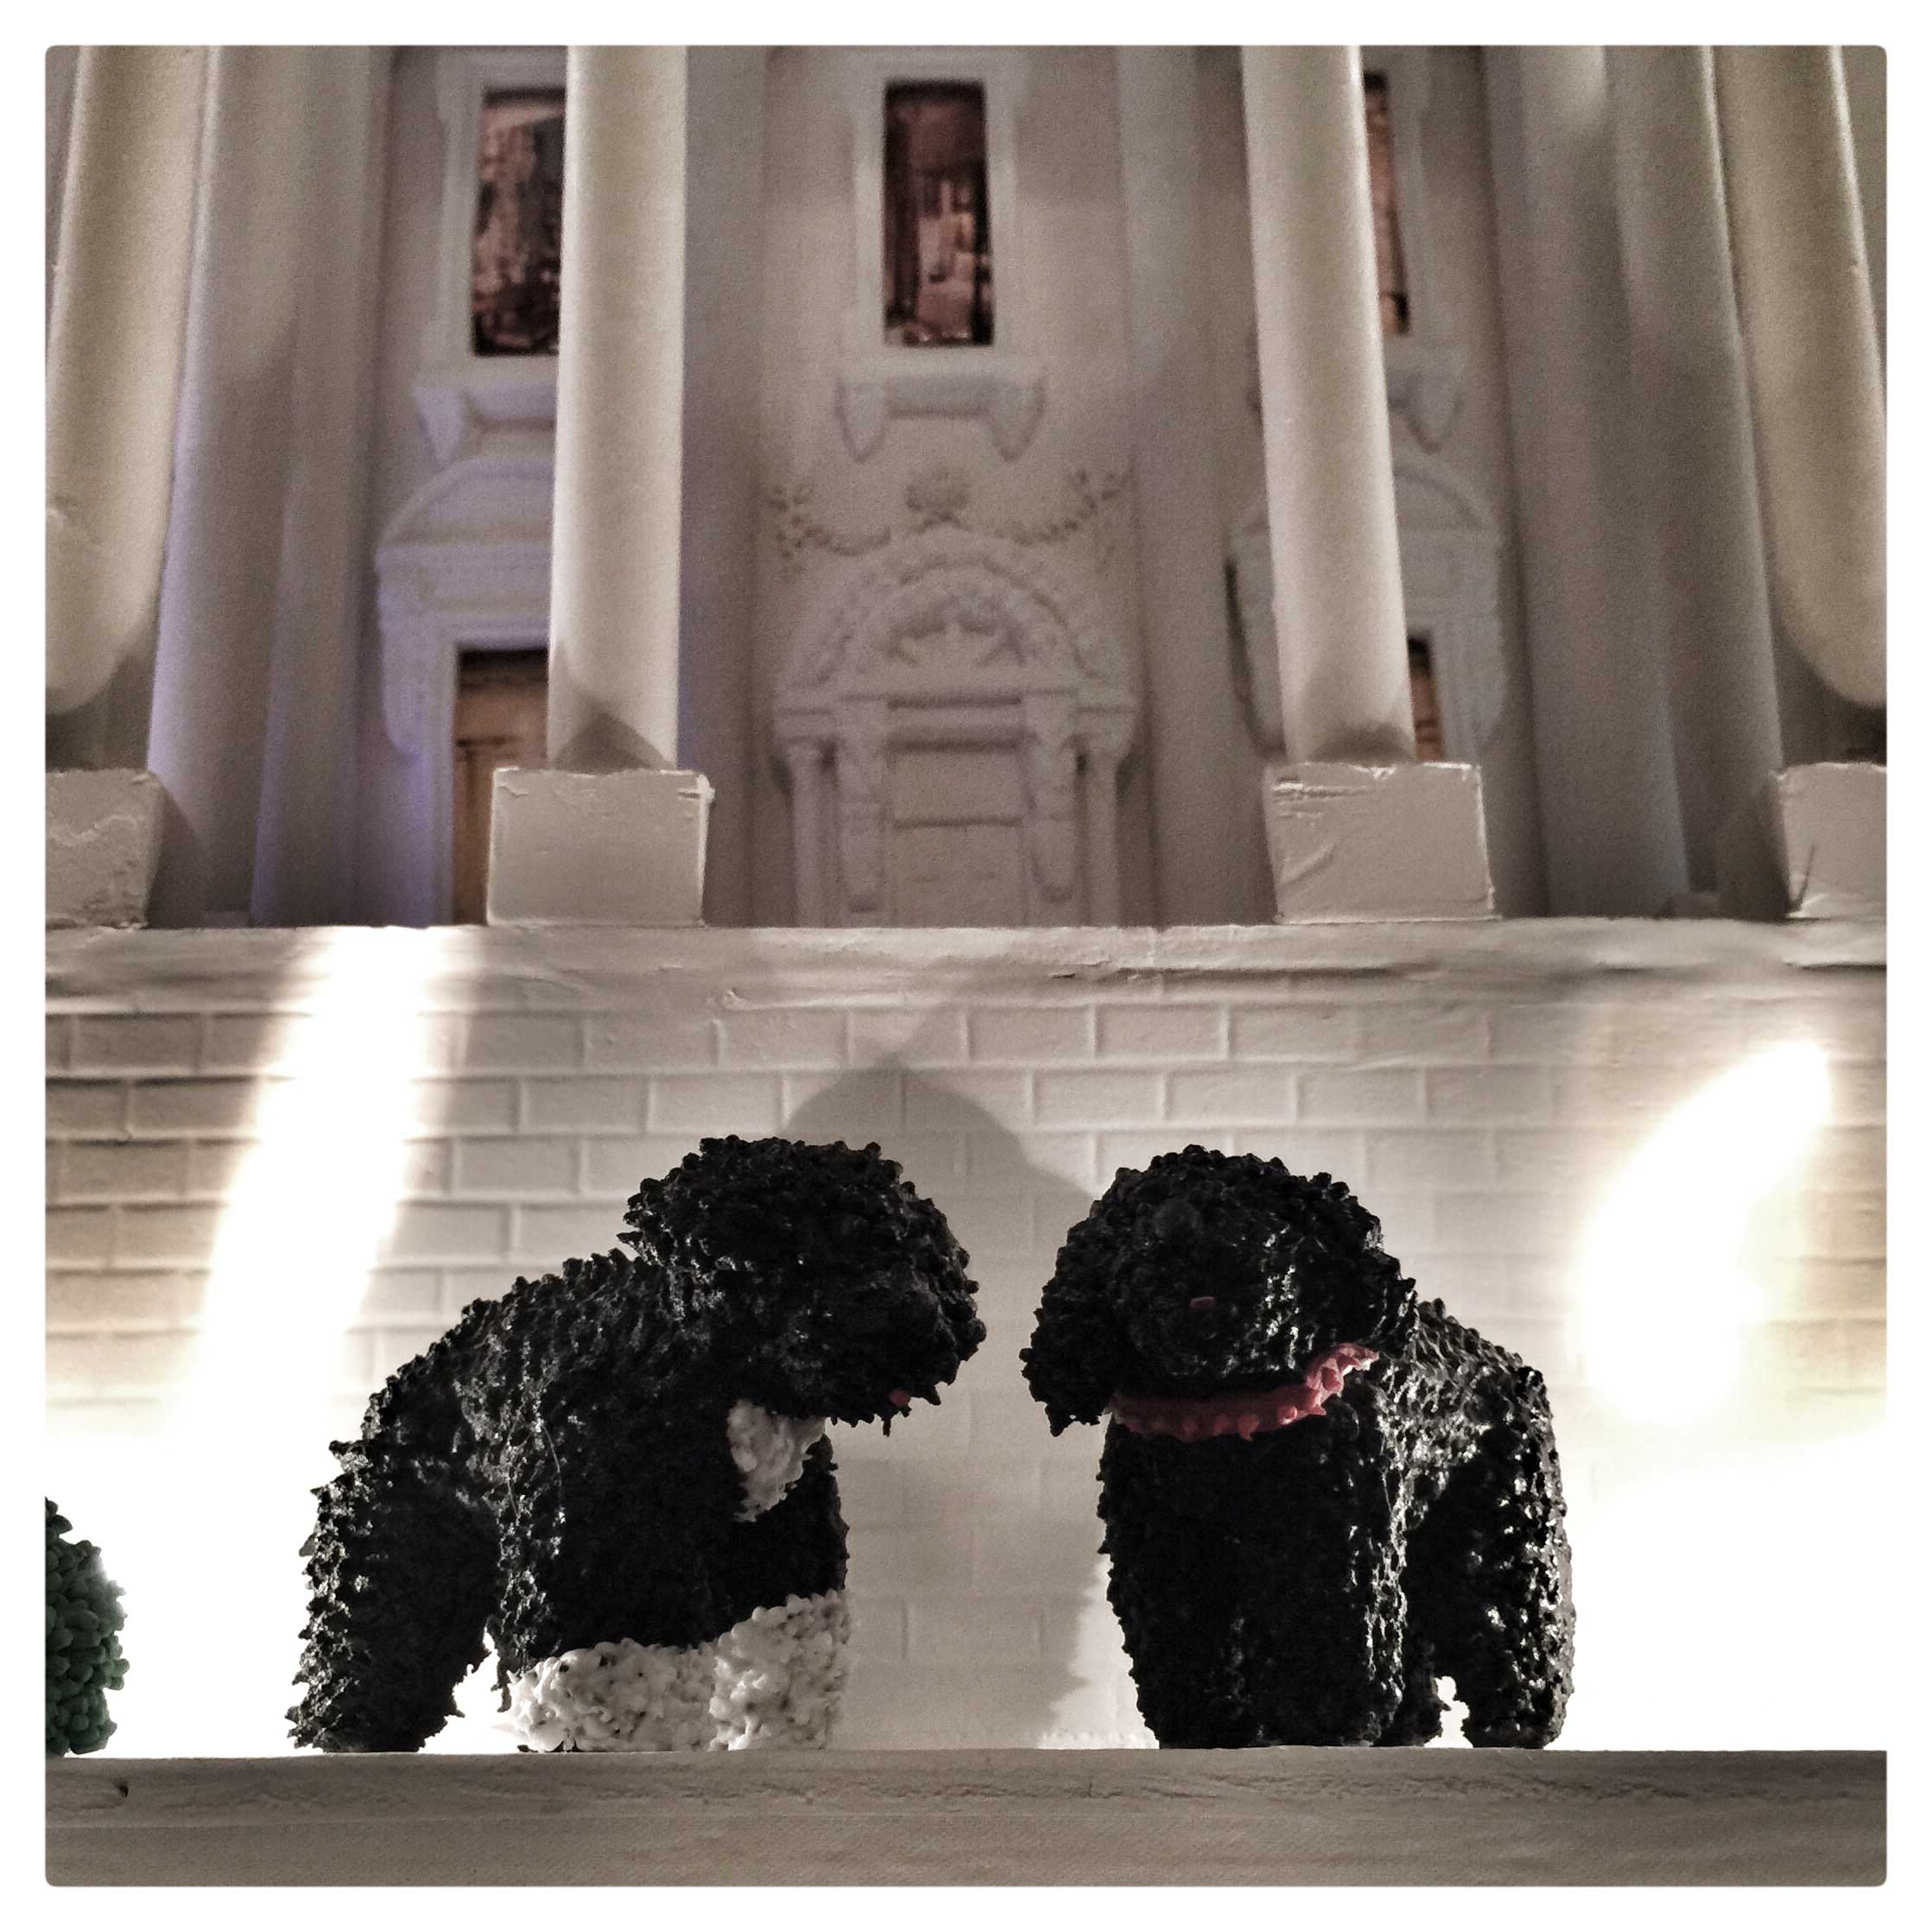 Figures of the Obama's two dogs in front of a gingerbread White House, as part of the holiday decorations at the WHite House.